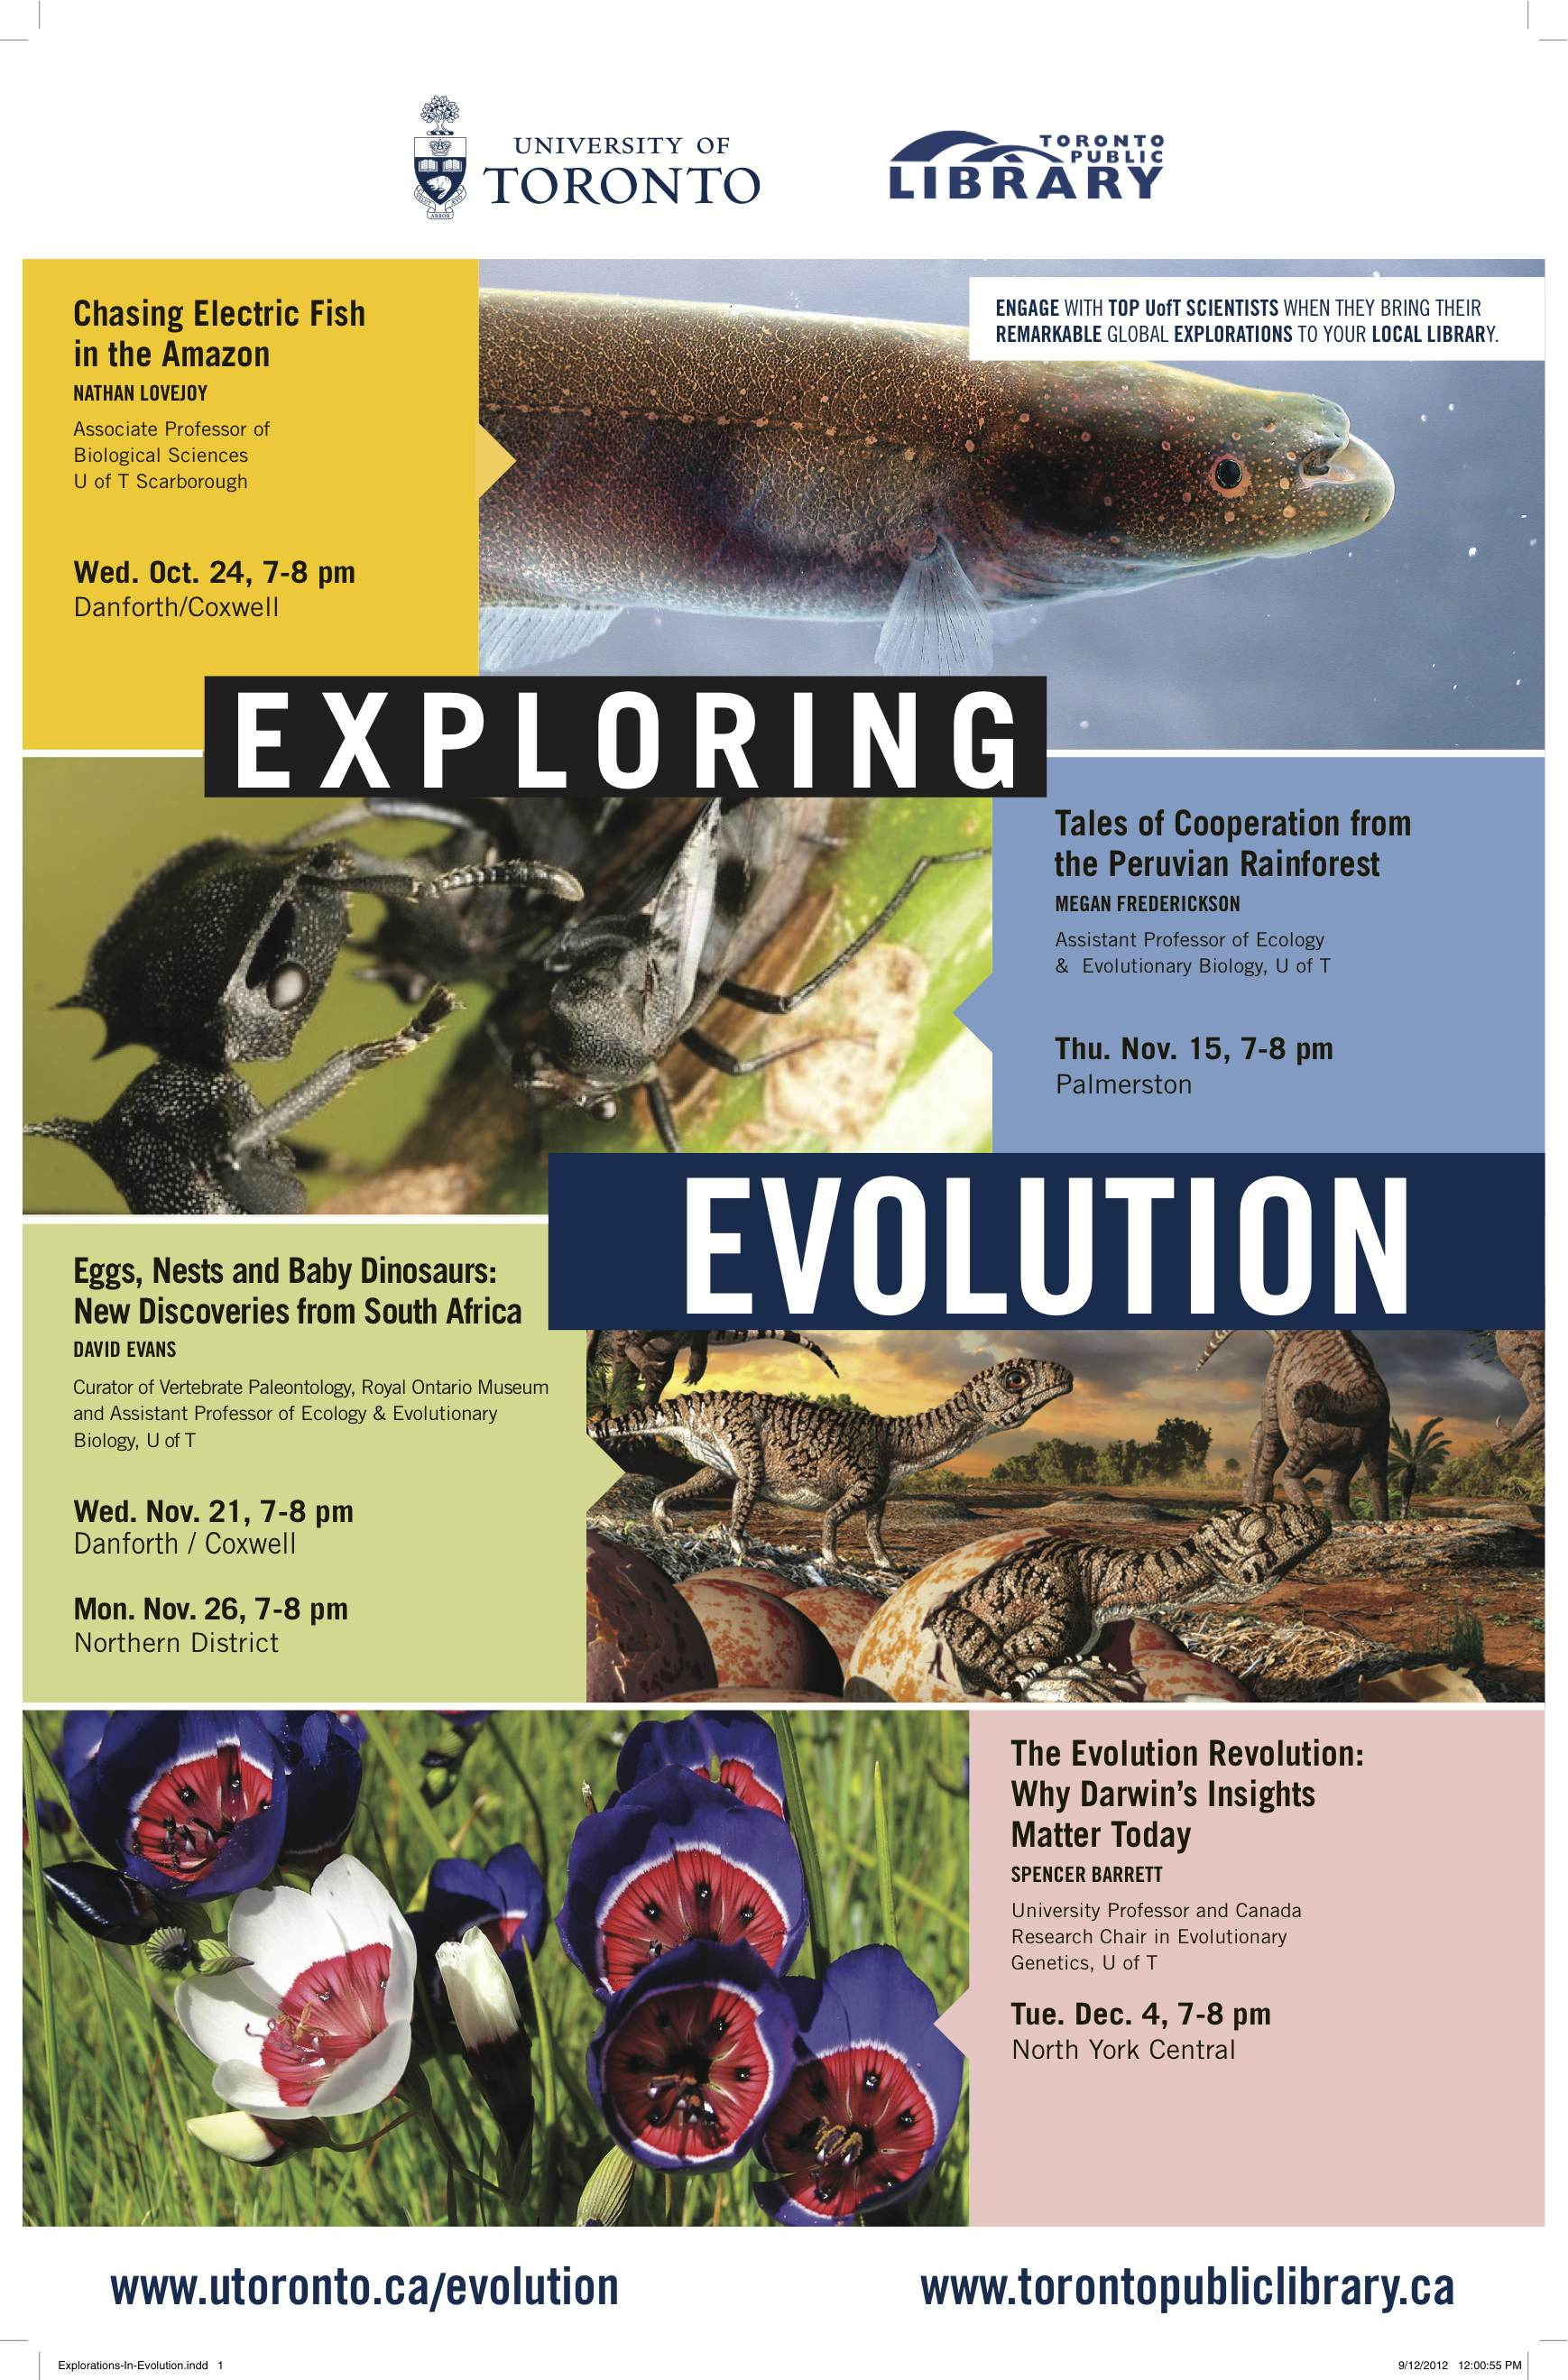 Explorations-In-Evolution12-9-2012(Print)